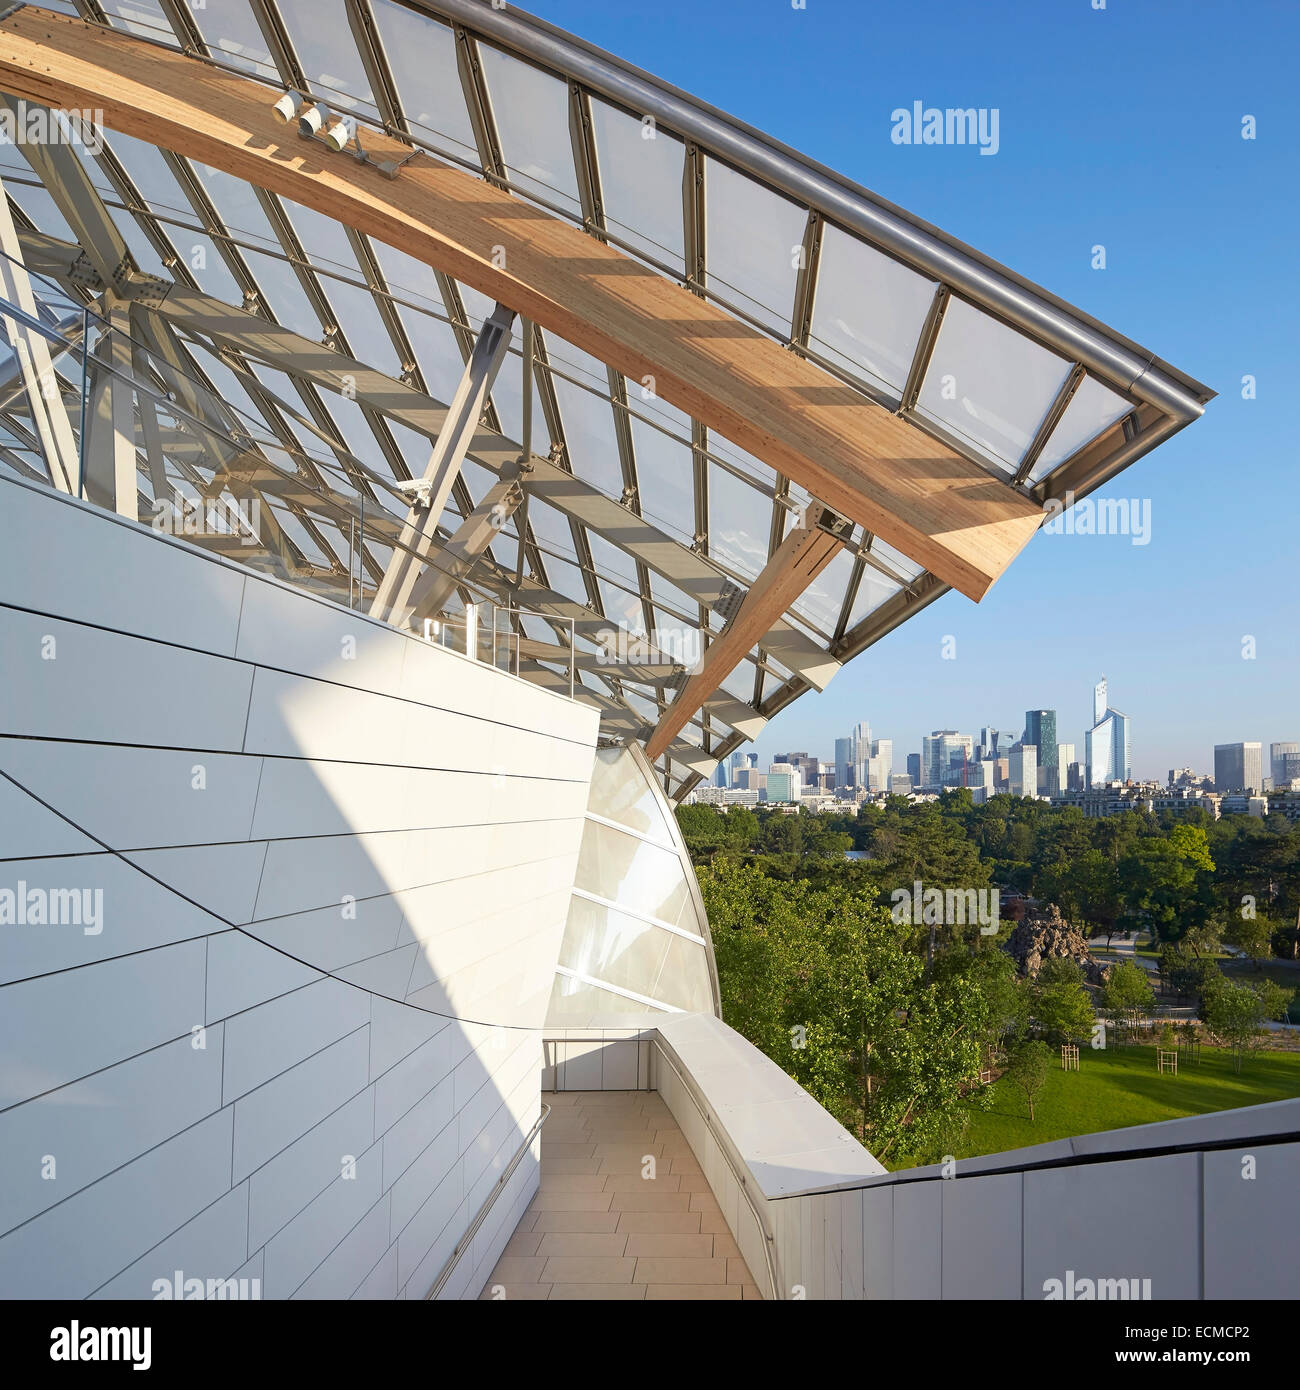 Terrasse Boulogne Fondation Louis Vuitton Paris Frankreich Architekt Gehry